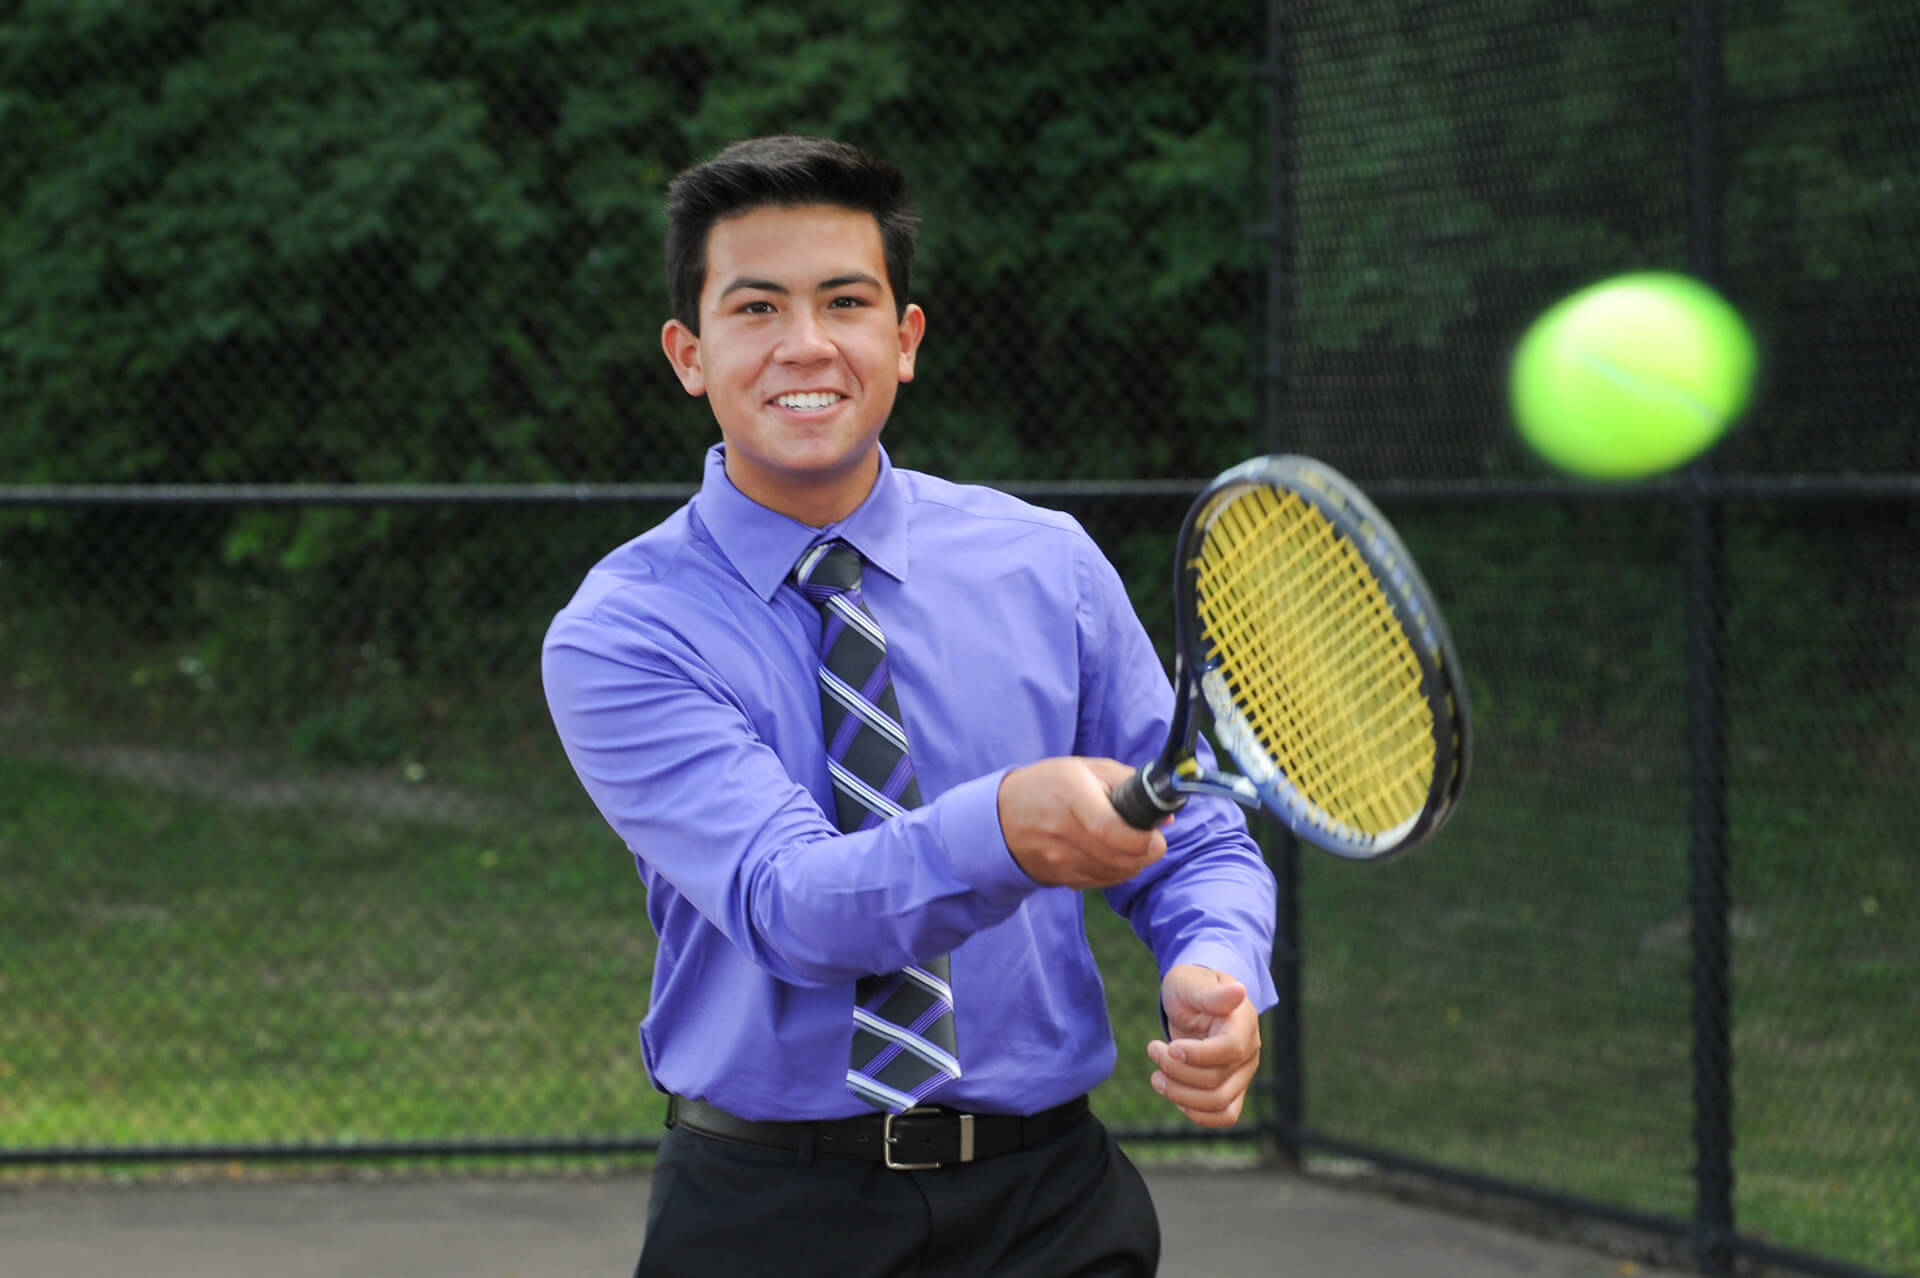 Troy Athens high school senior poses in his suit while playing tennis near Rochester, Michigan.